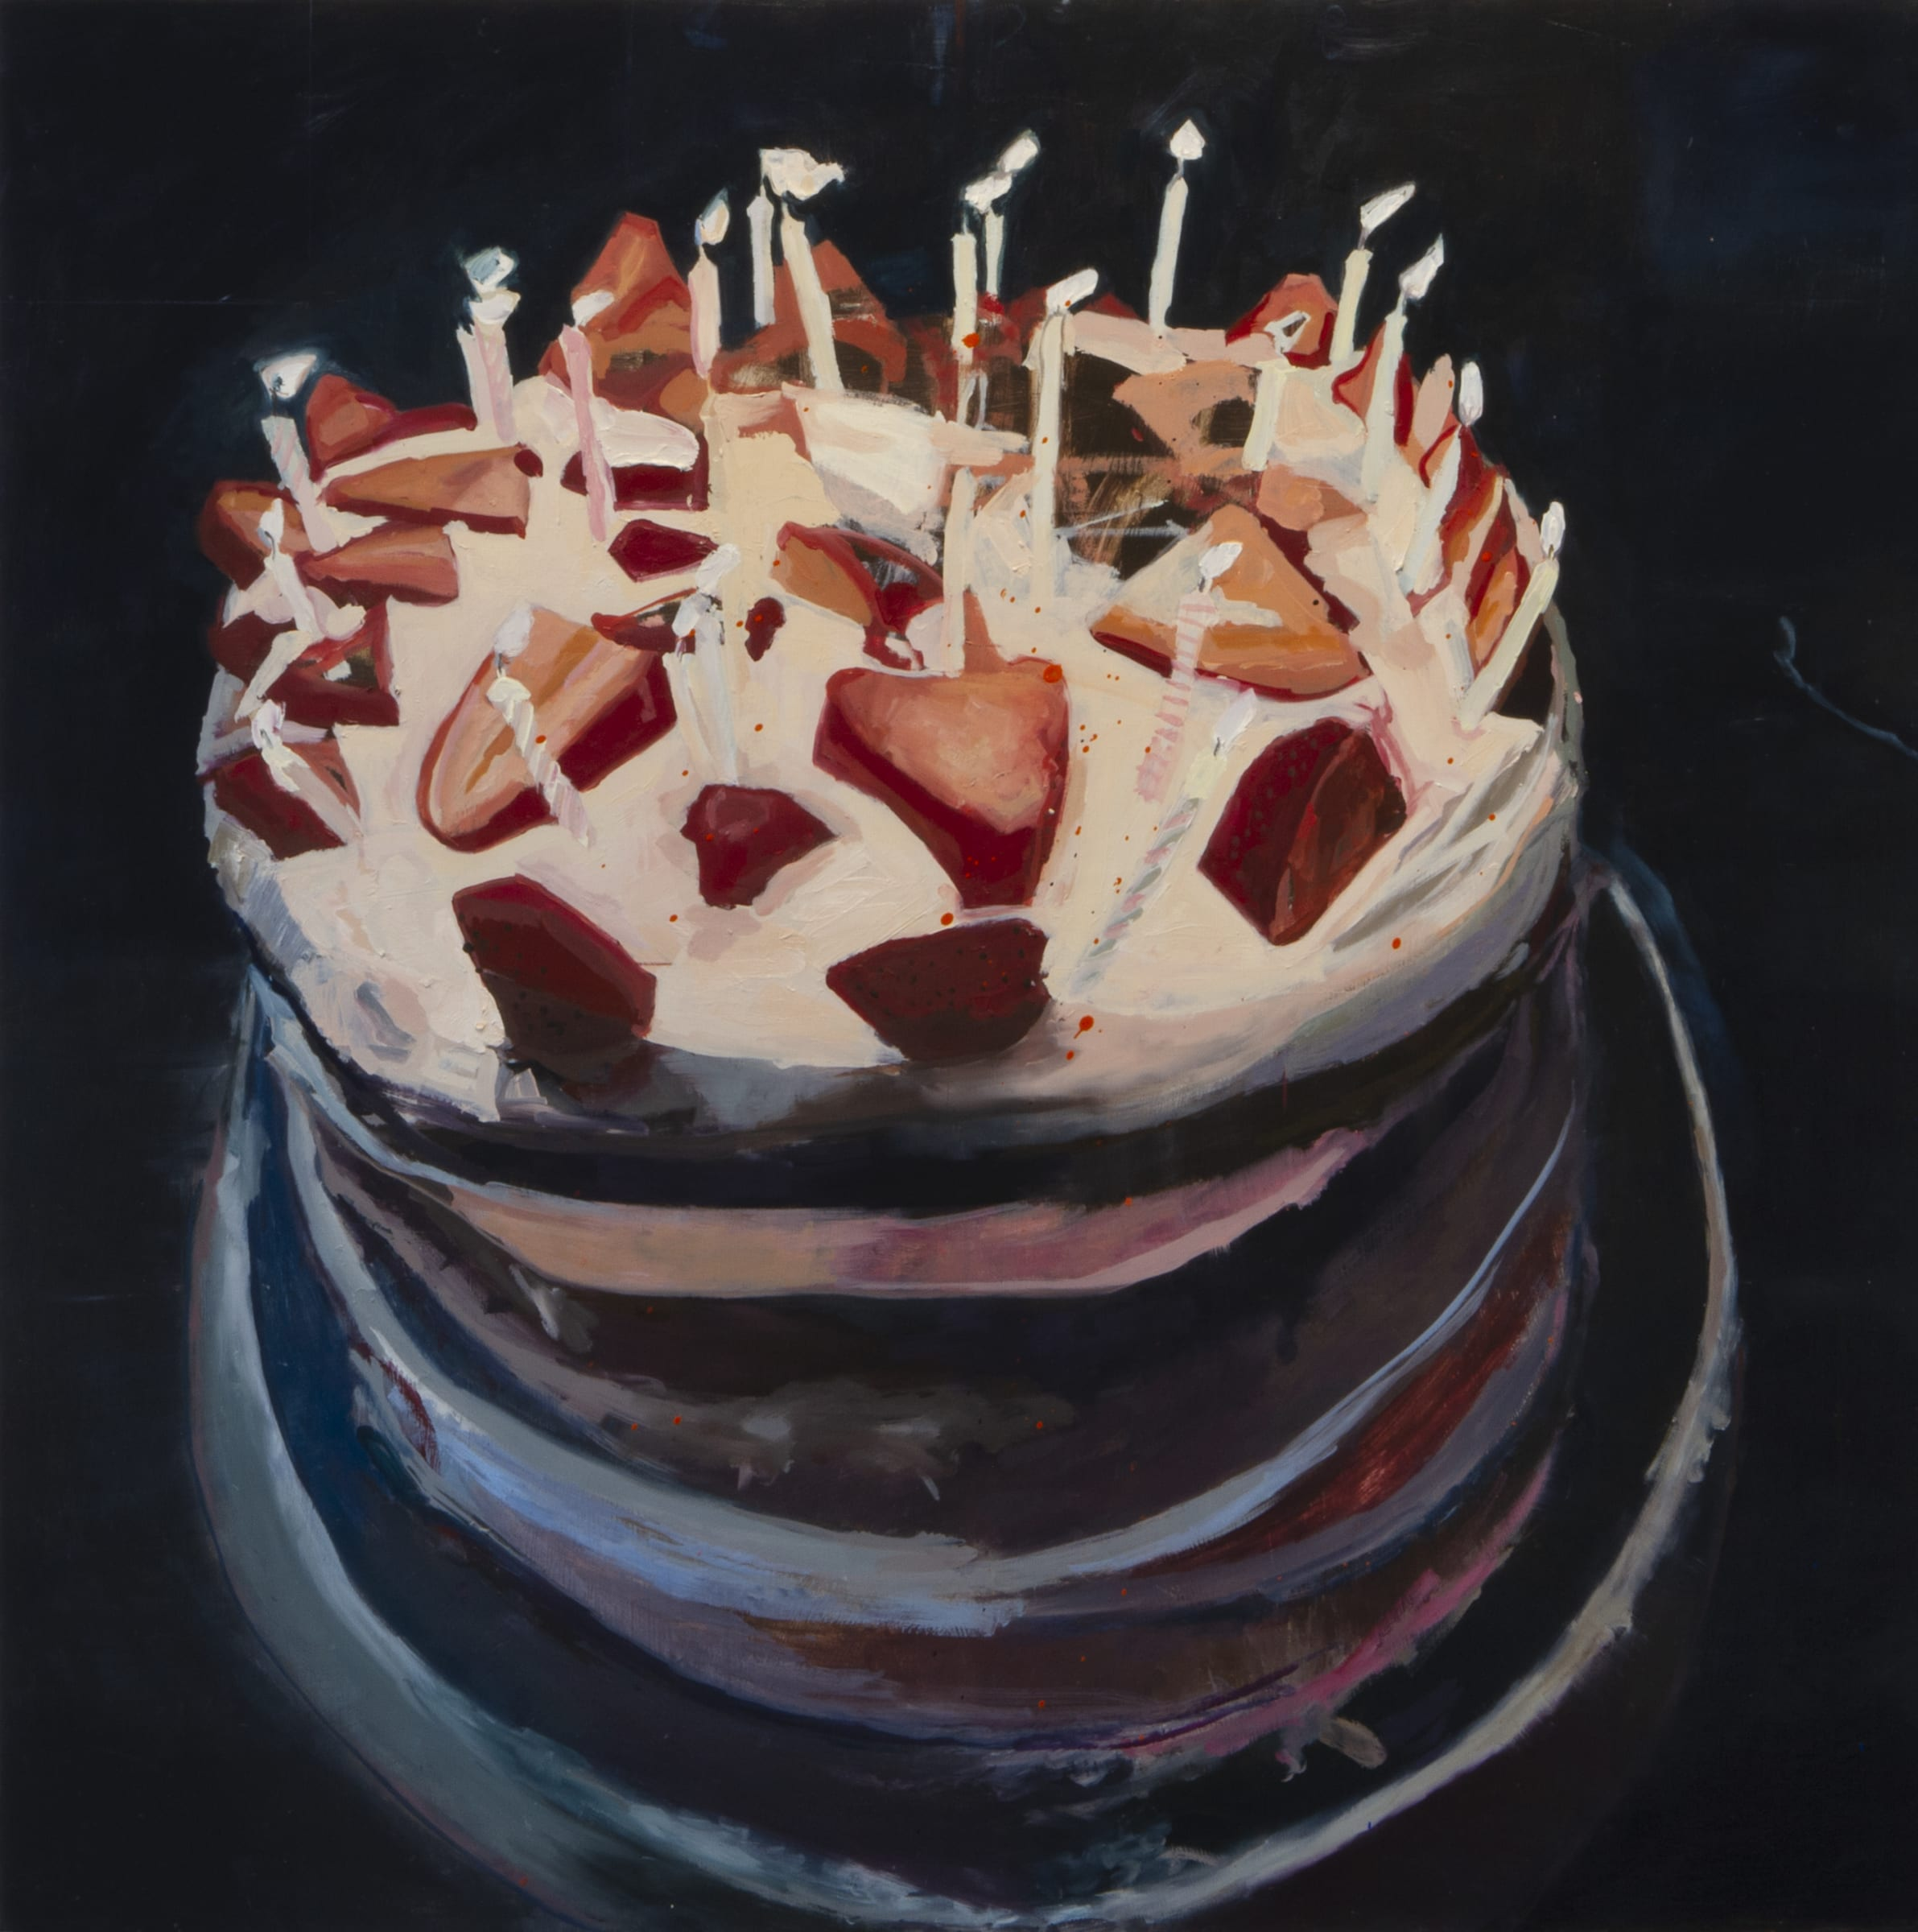 """<span class=""""link fancybox-details-link""""><a href=""""/artists/56-hadas-tal/works/1175-hadas-tal-strawberry-cake/"""">View Detail Page</a></span><div class=""""artist""""><strong>Hadas Tal</strong></div> <div class=""""title""""><em>Strawberry Cake</em></div> <div class=""""medium"""">Oil on wood panel</div> <div class=""""dimensions"""">42 x 42 inches</div>"""